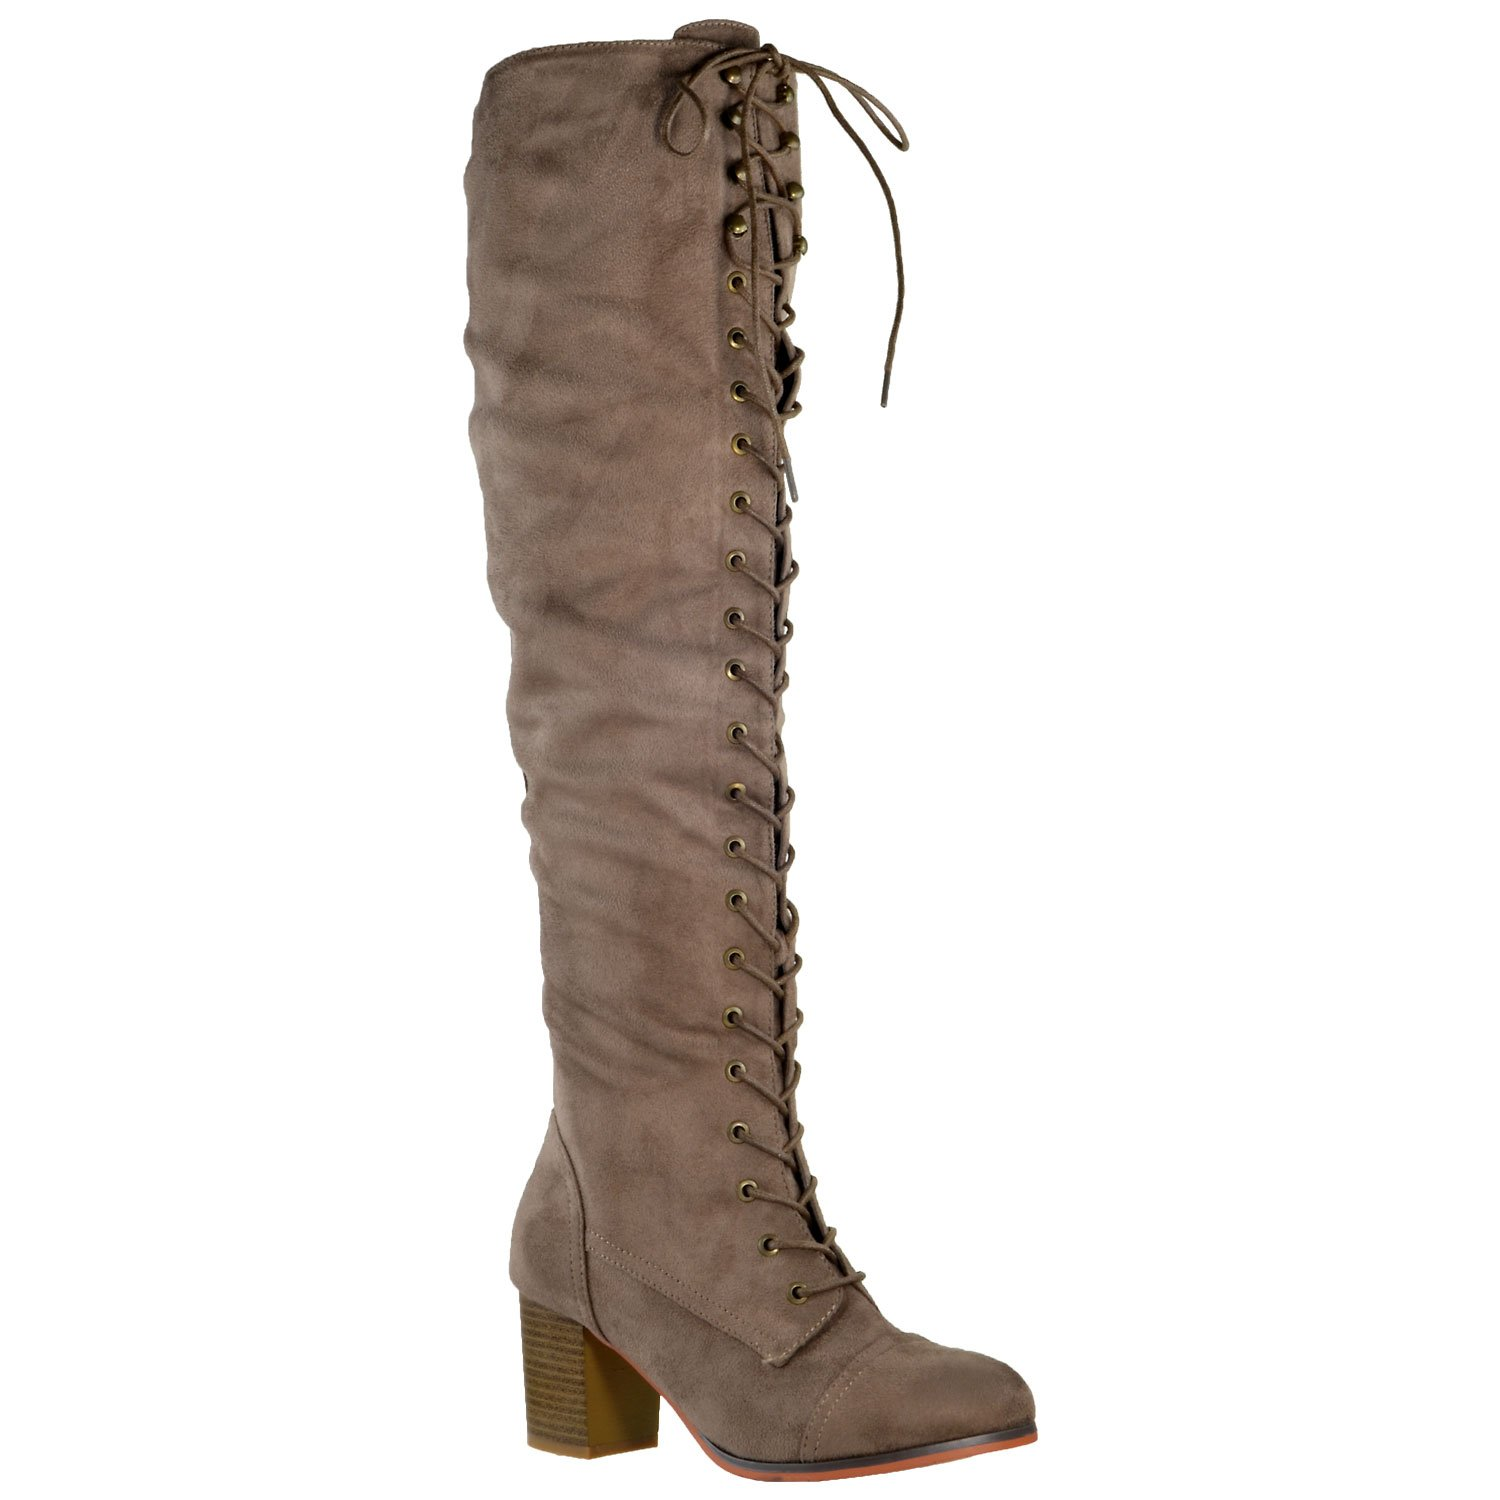 Generation Y Women Knee High Boots Chunky Block Heel Retro Lace Up Western Shoes Taupe SZ 8